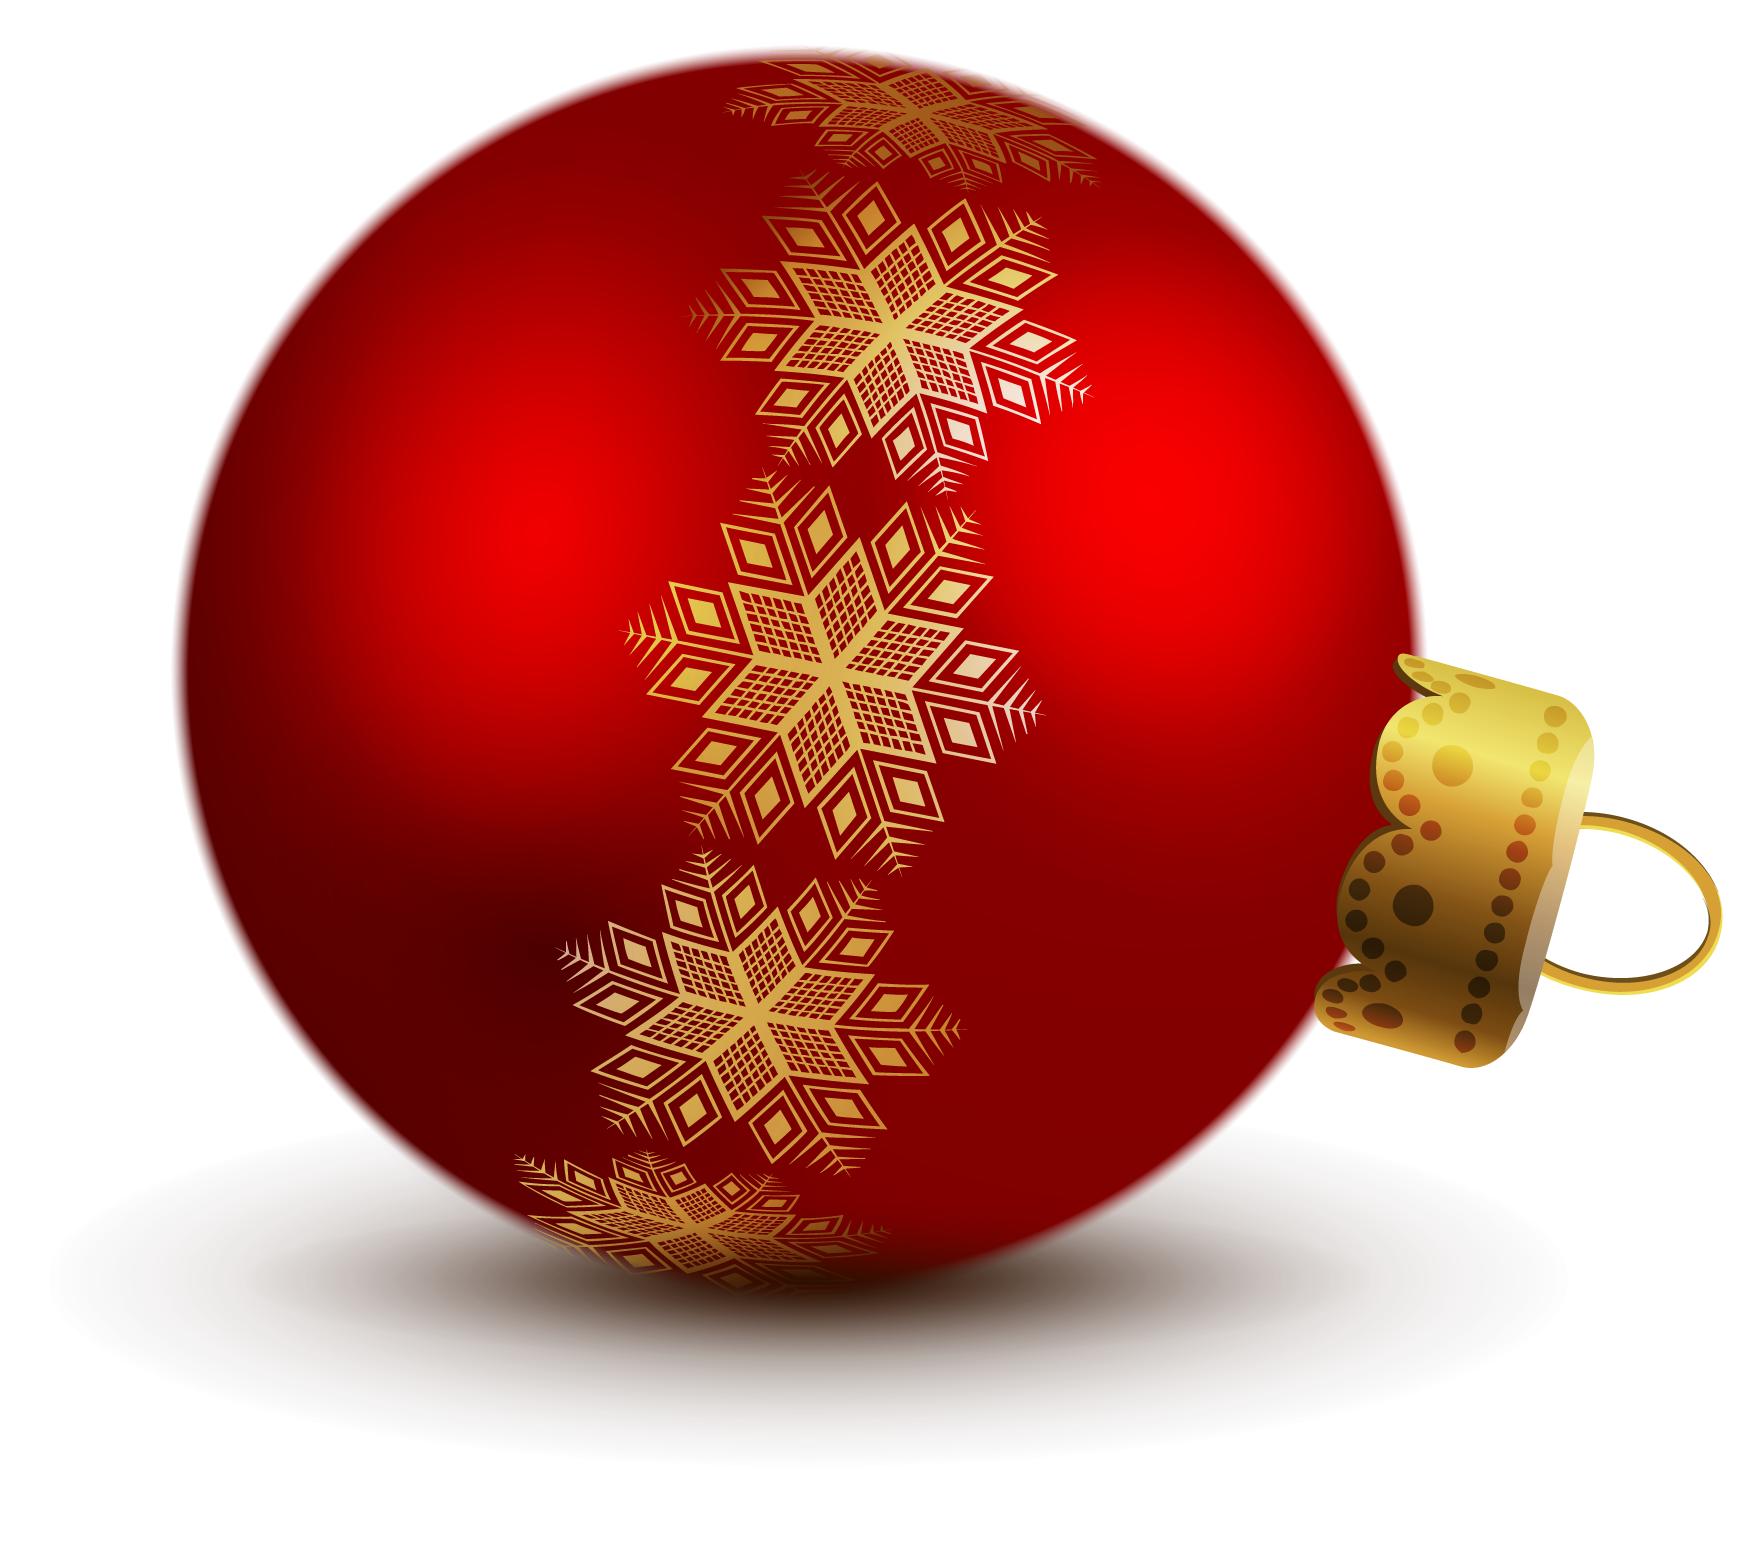 Christmas Ornaments Designs Png 46355 Free Icons And Png Backgrounds